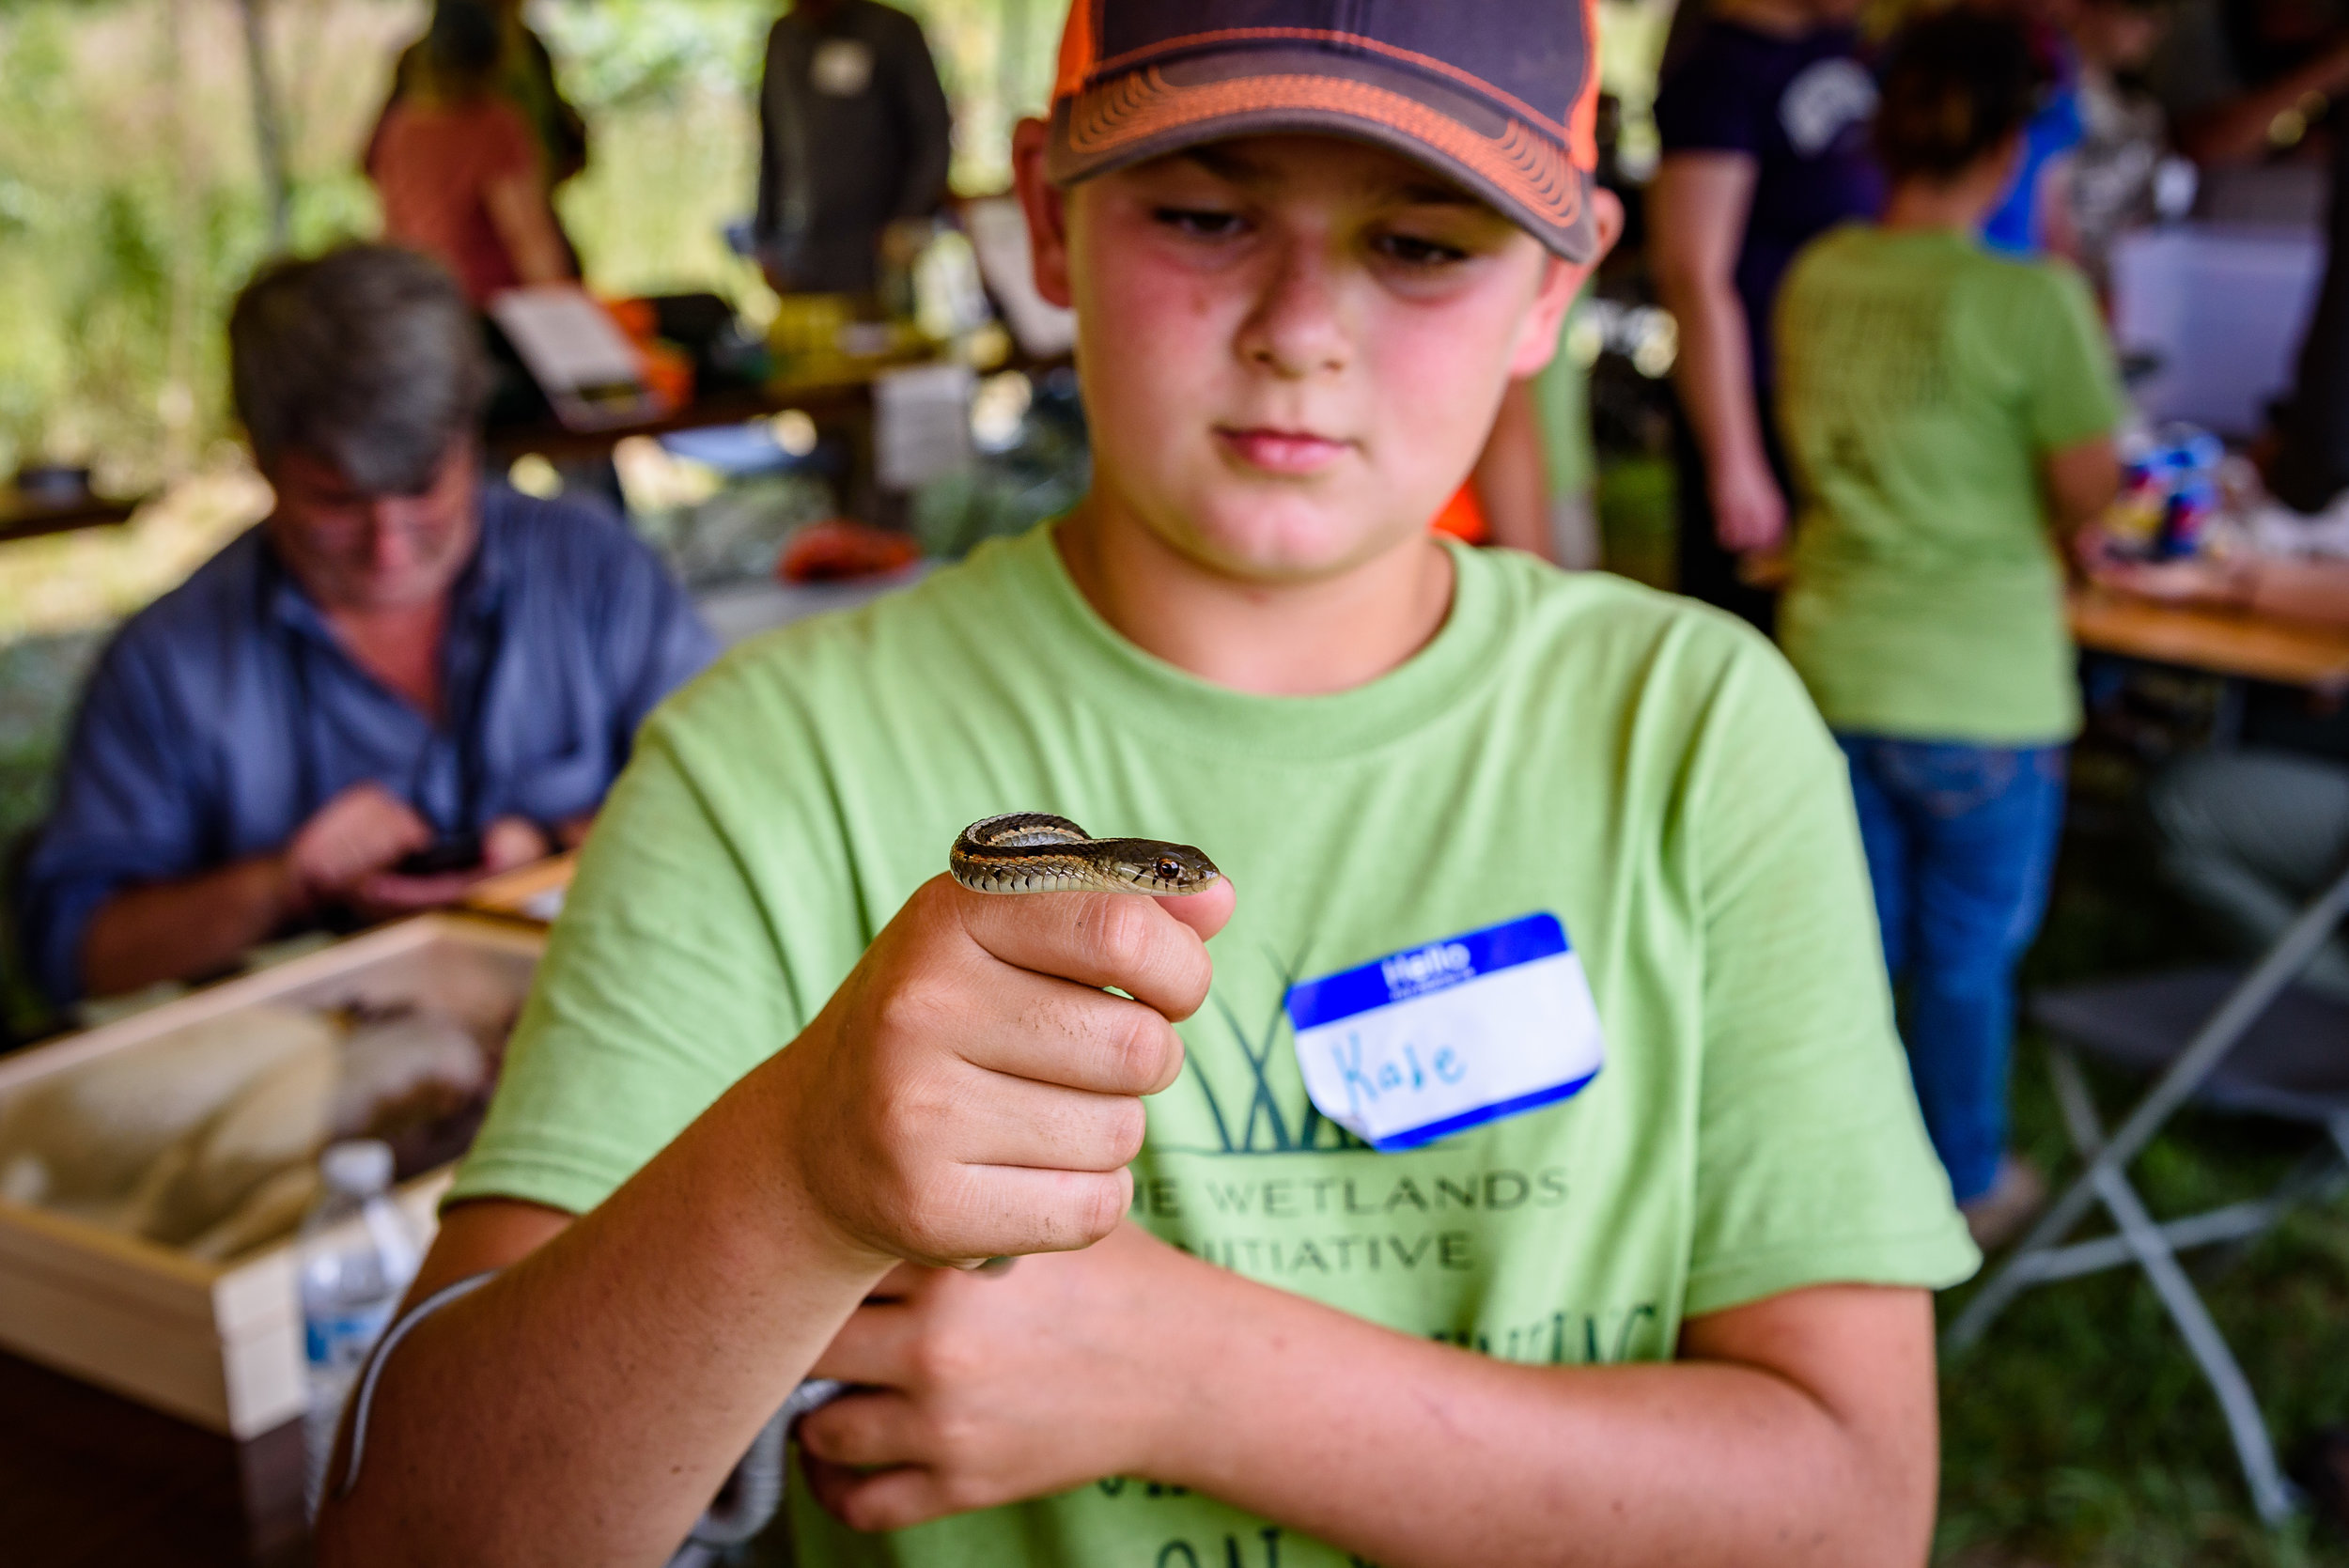 A young BioBlitz participant gets friendly with a garter snake. Photo by Rafi Wilkinson.